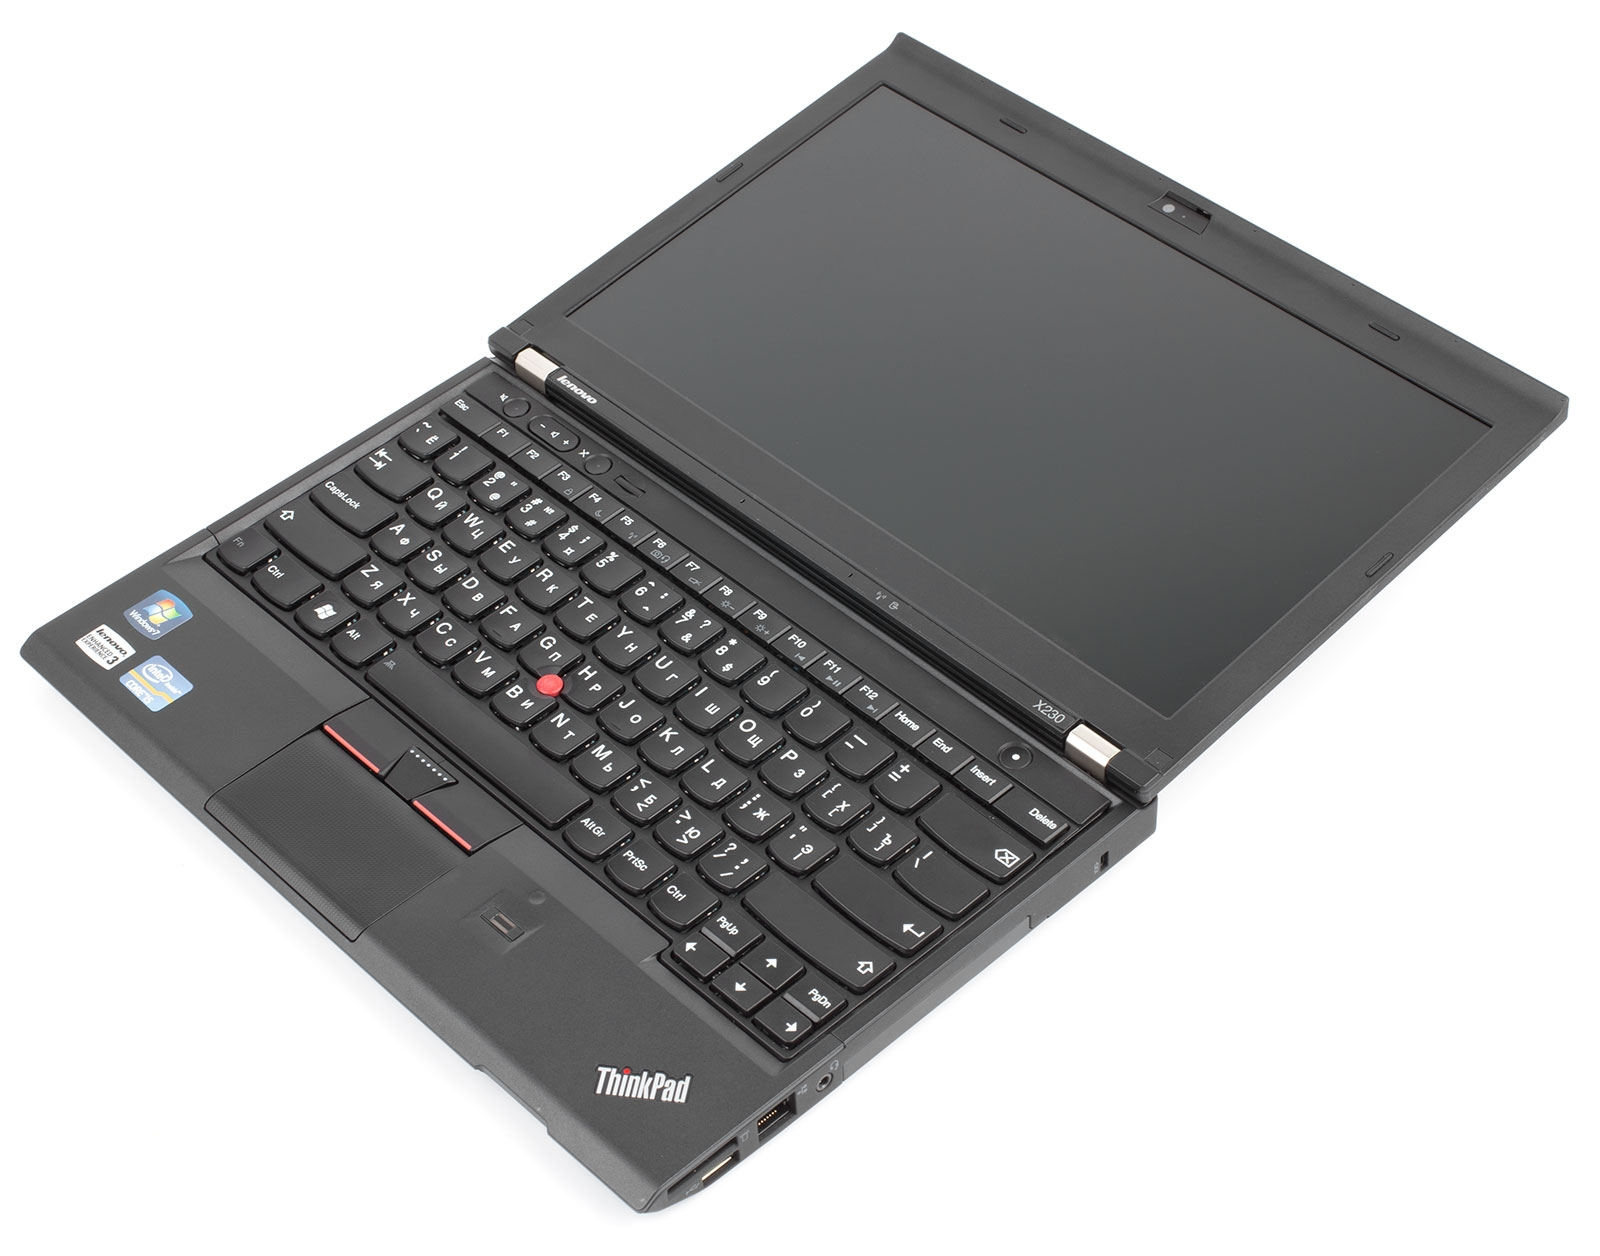 Lenovo Thinkpad X230 Core I5 3320m Ram 4g Hdd 320g